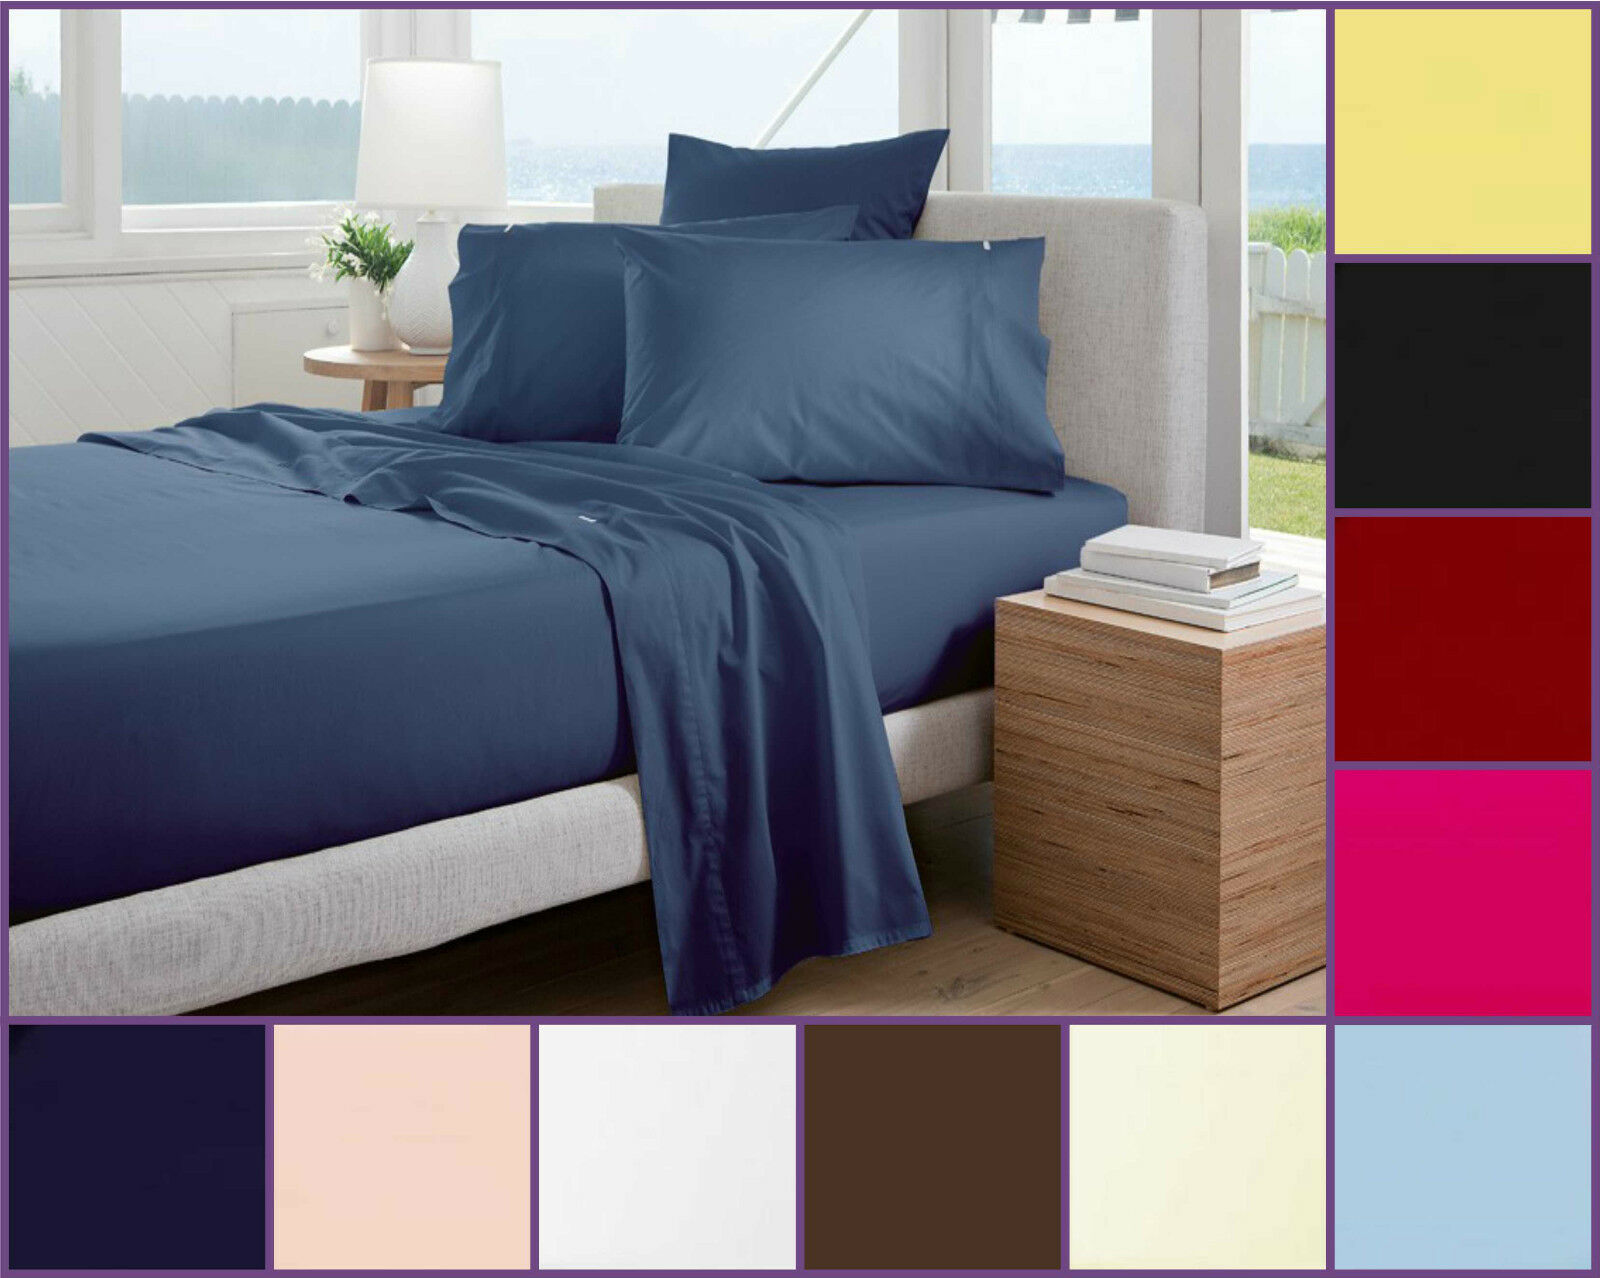 Plain Dye Bed Sheets Fitted Flat Sheet Polycotton Bedding Pillowcase Non  Iron 1 Of 1FREE Shipping See More